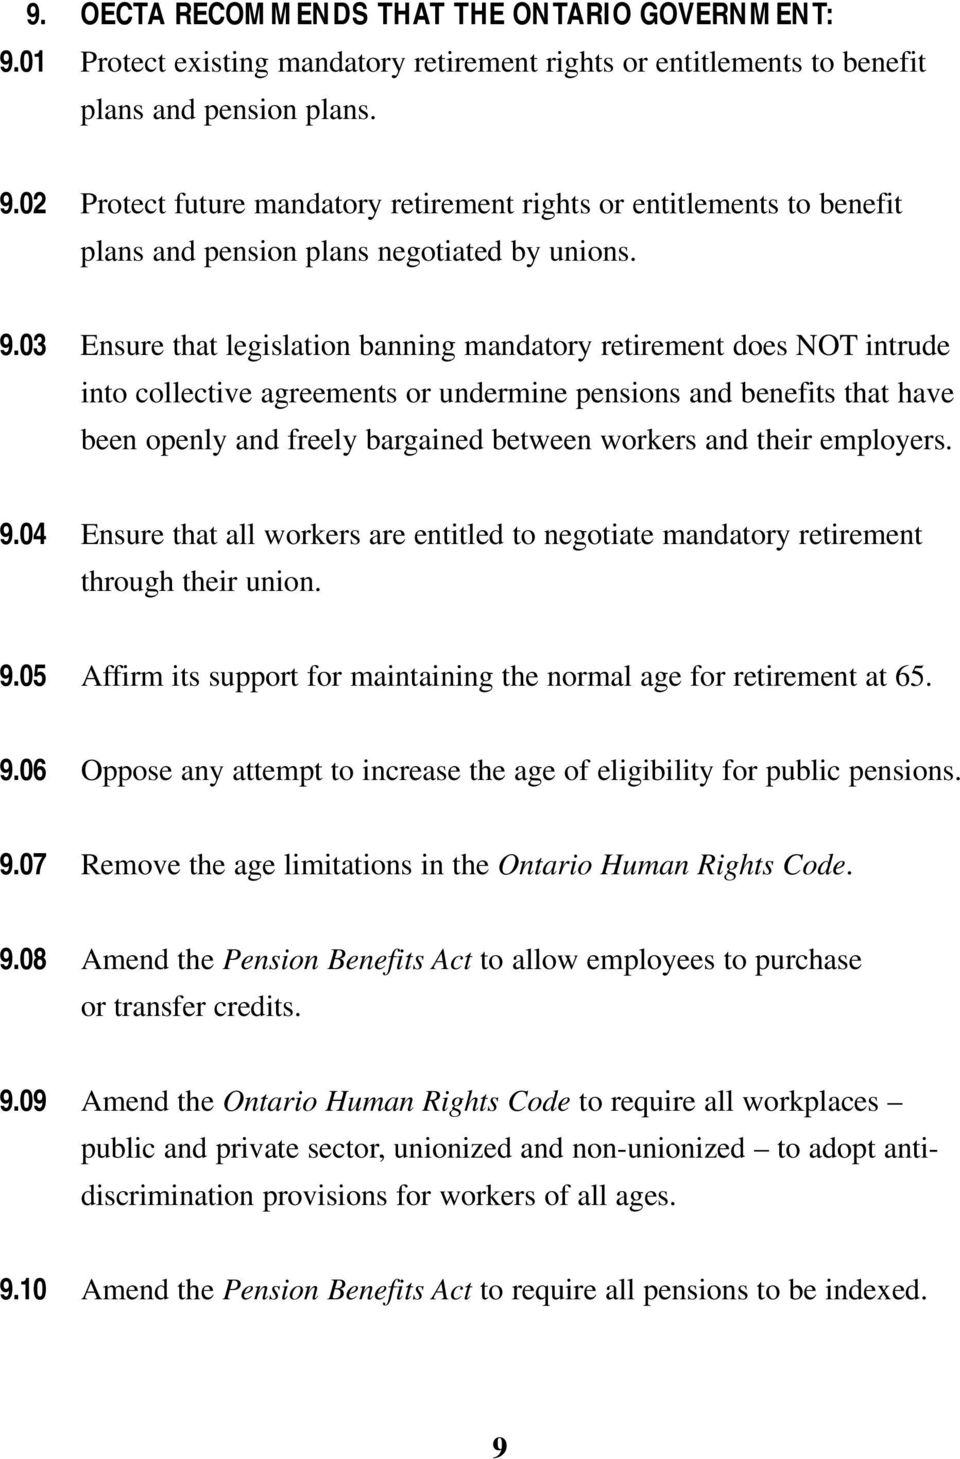 their employers. 9.04 Ensure that all workers are entitled to negotiate mandatory retirement through their union. 9.05 Affirm its support for maintaining the normal age for retirement at 65. 9.06 Oppose any attempt to increase the age of eligibility for public pensions.